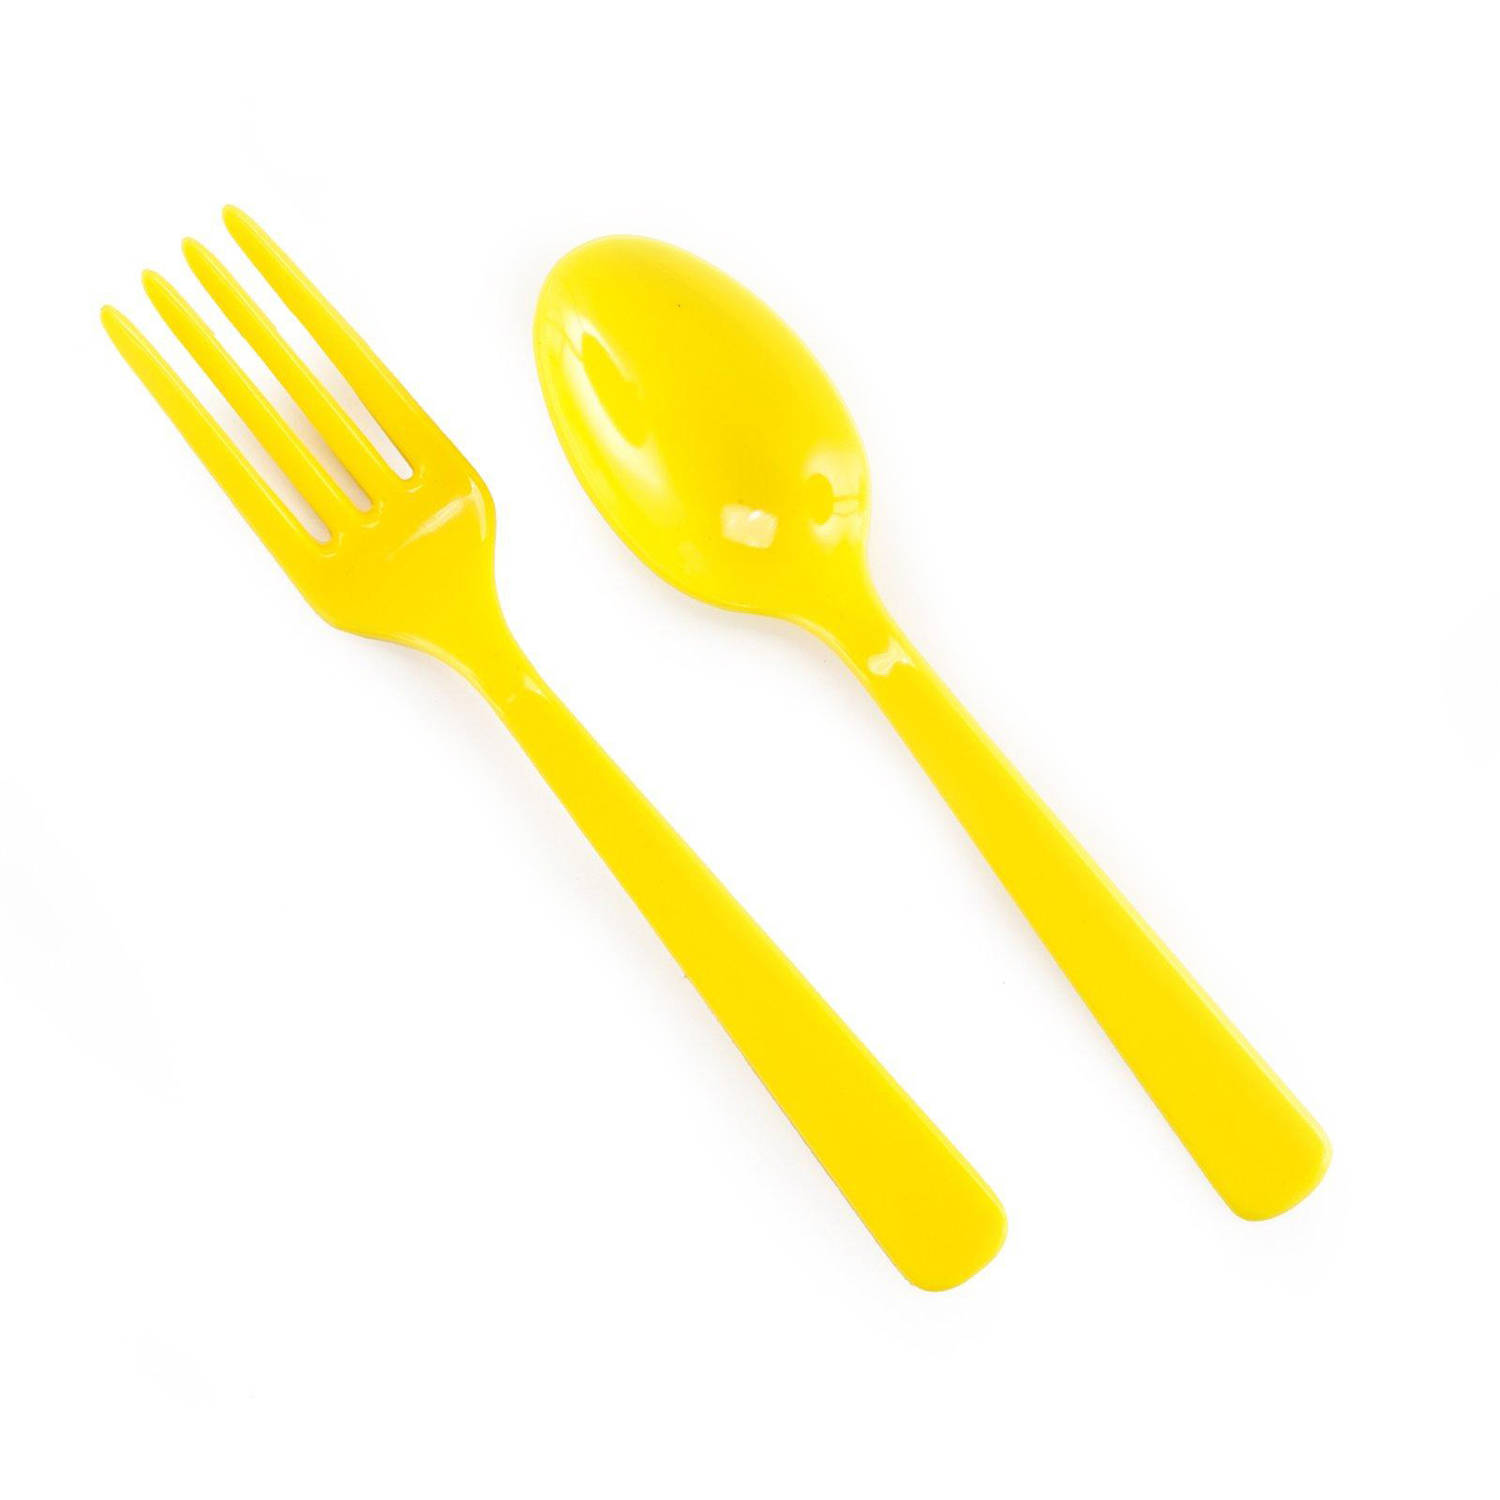 Forks and Spoons, Yellow, 8pk - Walmart.com